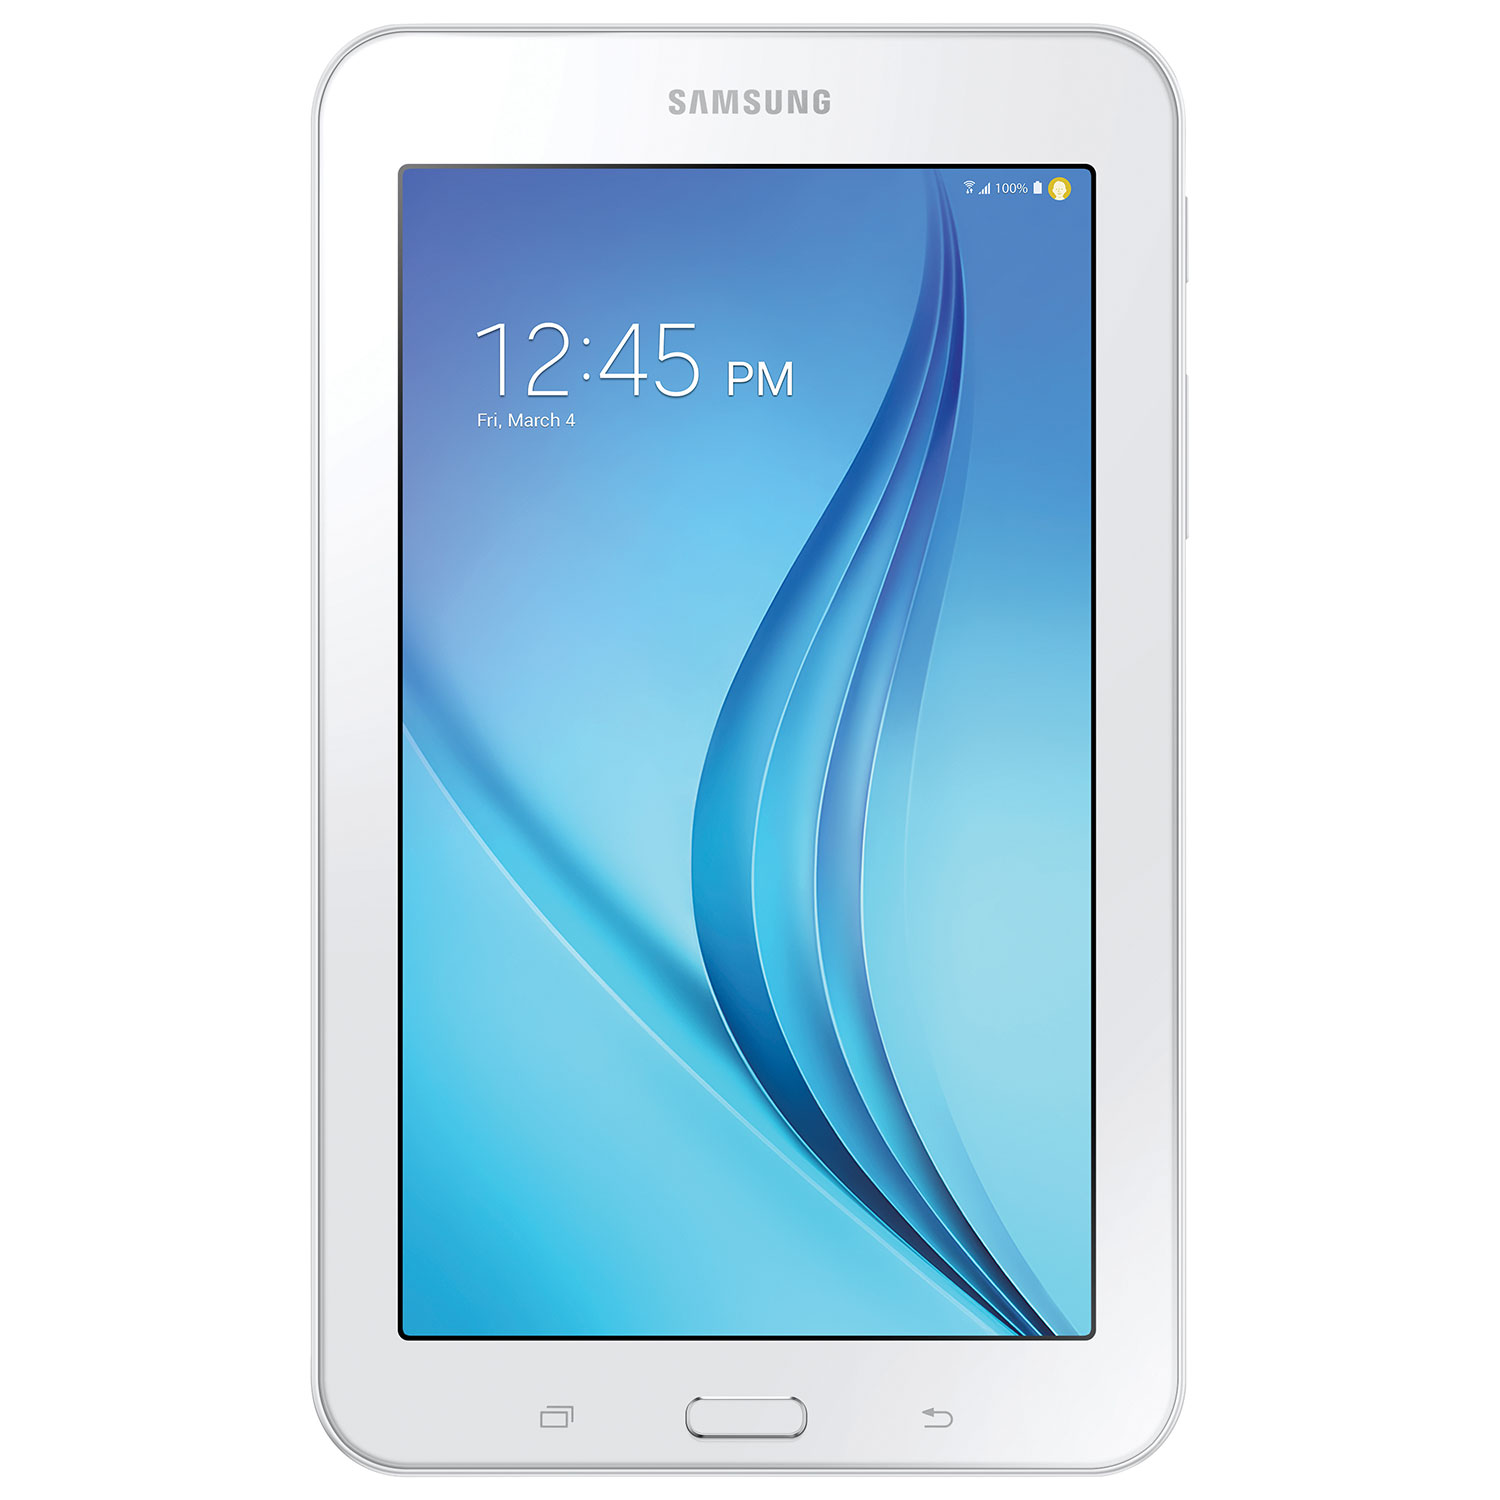 samsung galaxy tab e lite 7 8gb 1 3ghz quad core android. Black Bedroom Furniture Sets. Home Design Ideas